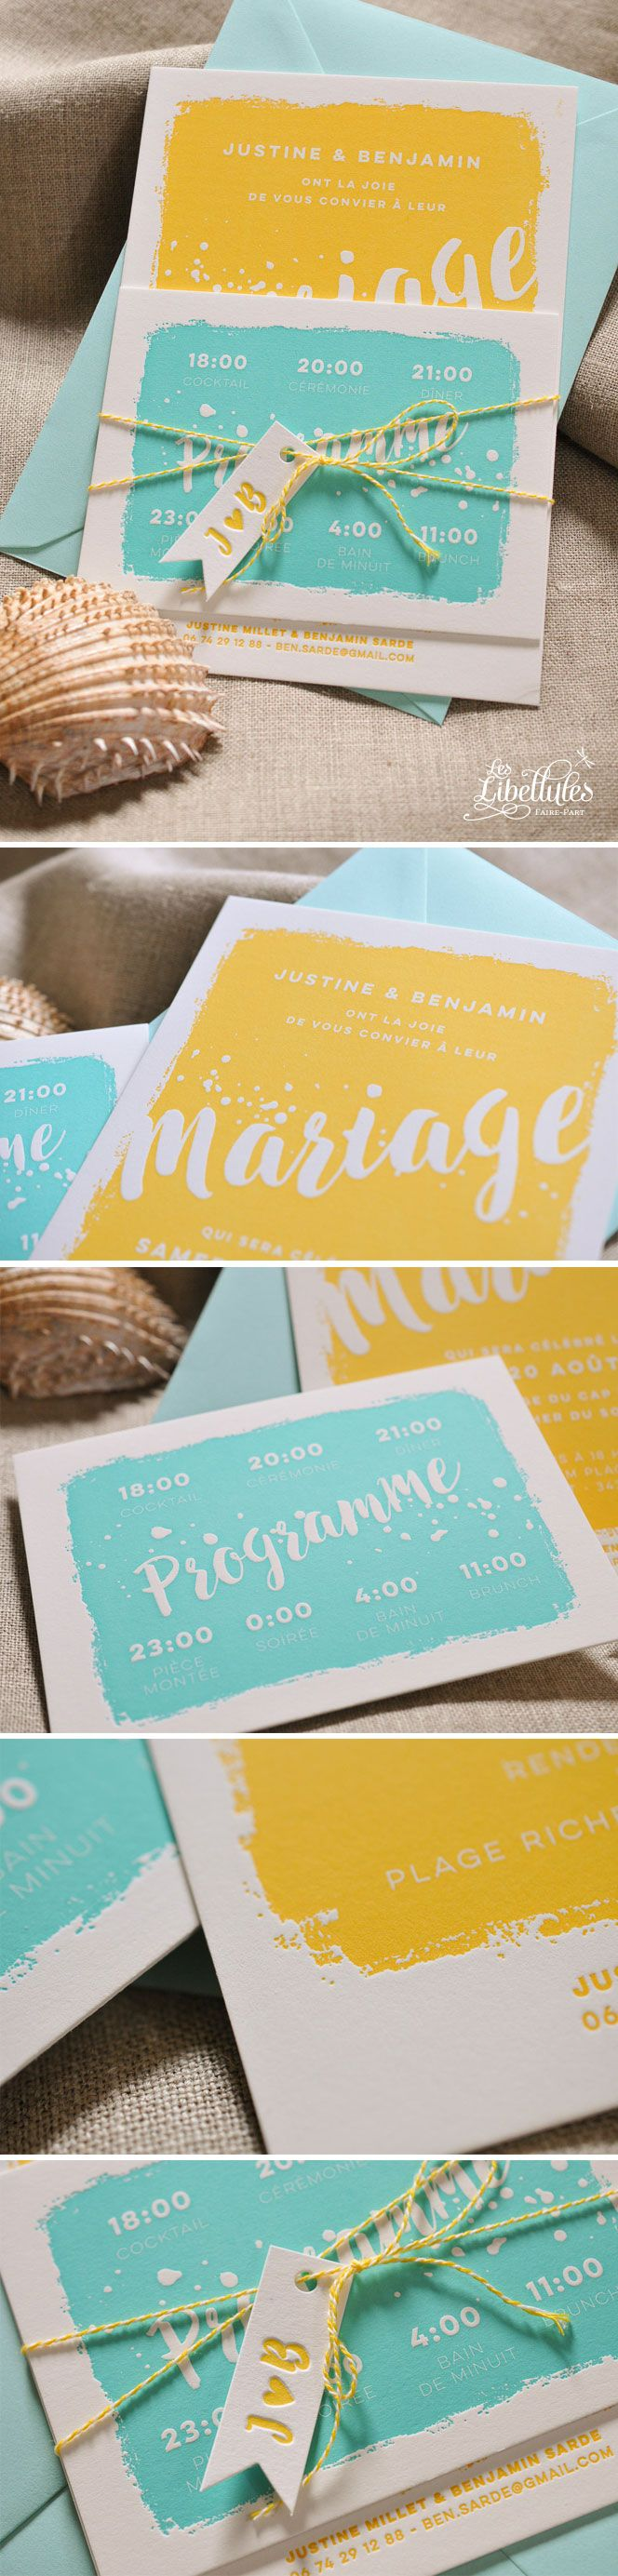 "Faire-part de mariage en Letterpress ""Bain de Soleil"" jaune accompagné de son programme bleu aqua et d'un petit fanion. Délicieuse typo manuscrite et joyeuses éclaboussures. // ""Sun kissed"" bright yellow letterpress wedding invitation with its blue aqua program and a flag label. Hand drawned font and splatters. www.Les-Libellules.fr"